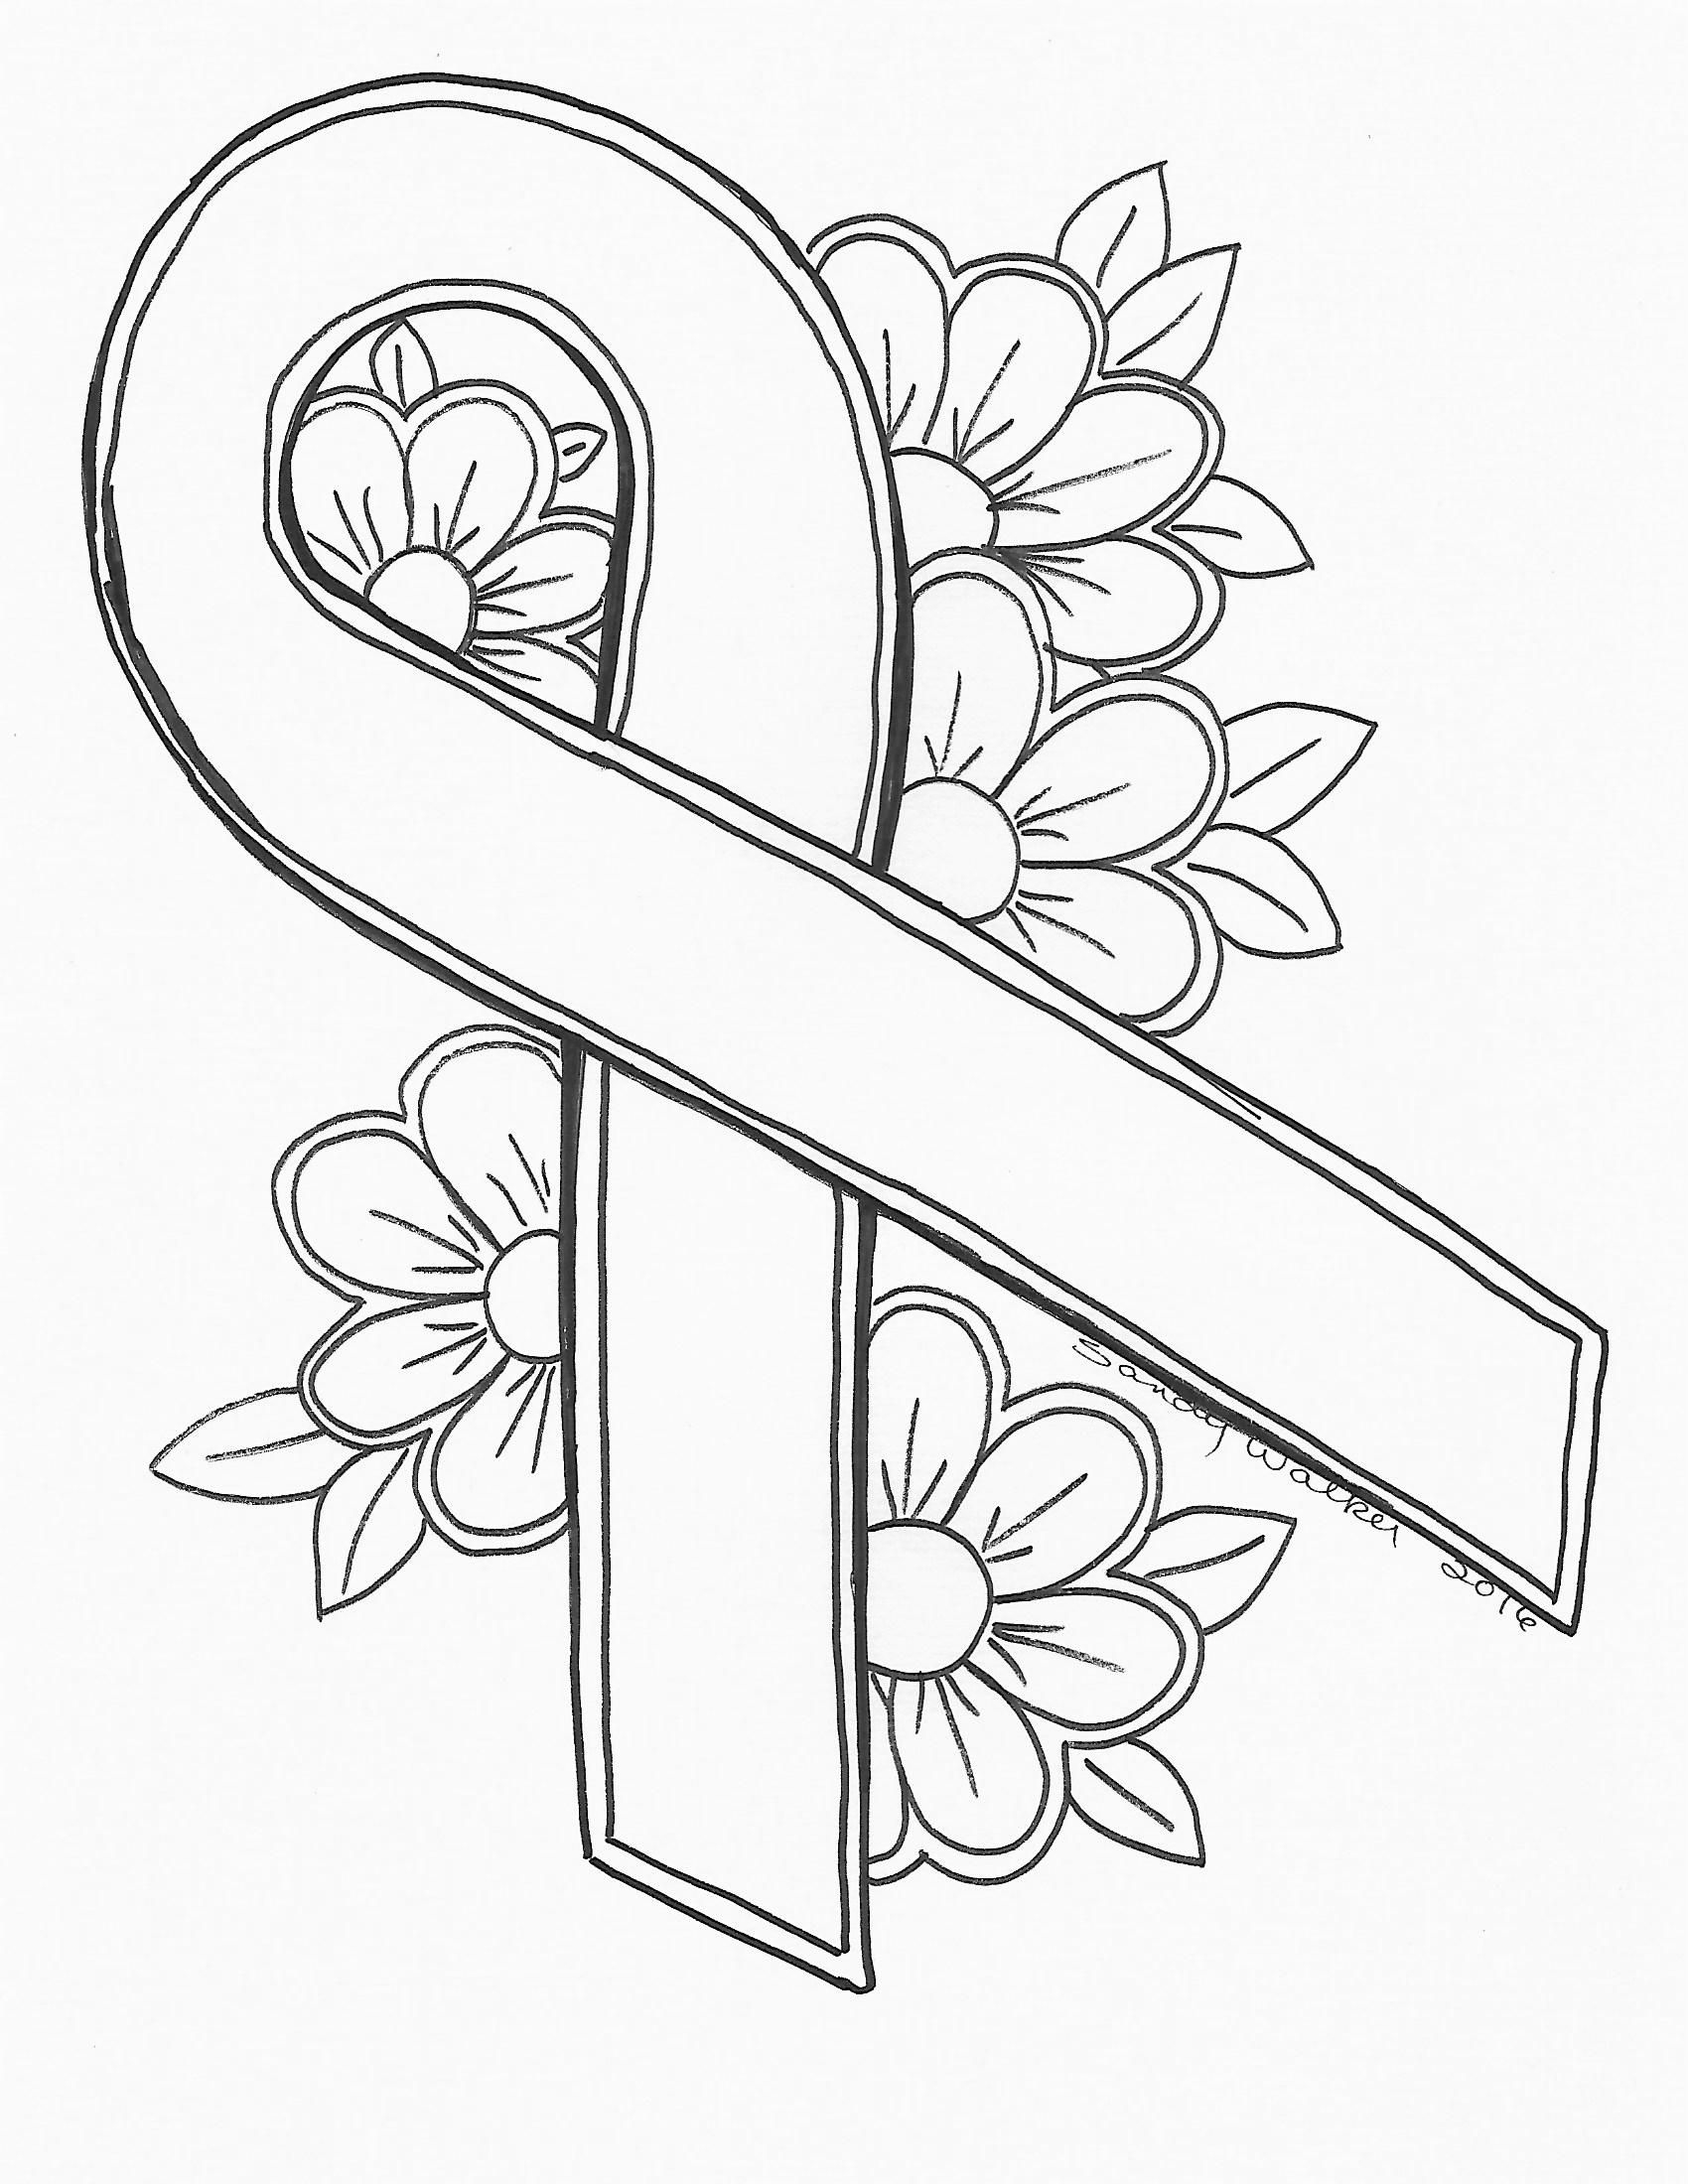 Breast Cancer Coloring Pages to Print 13d - To print for your project